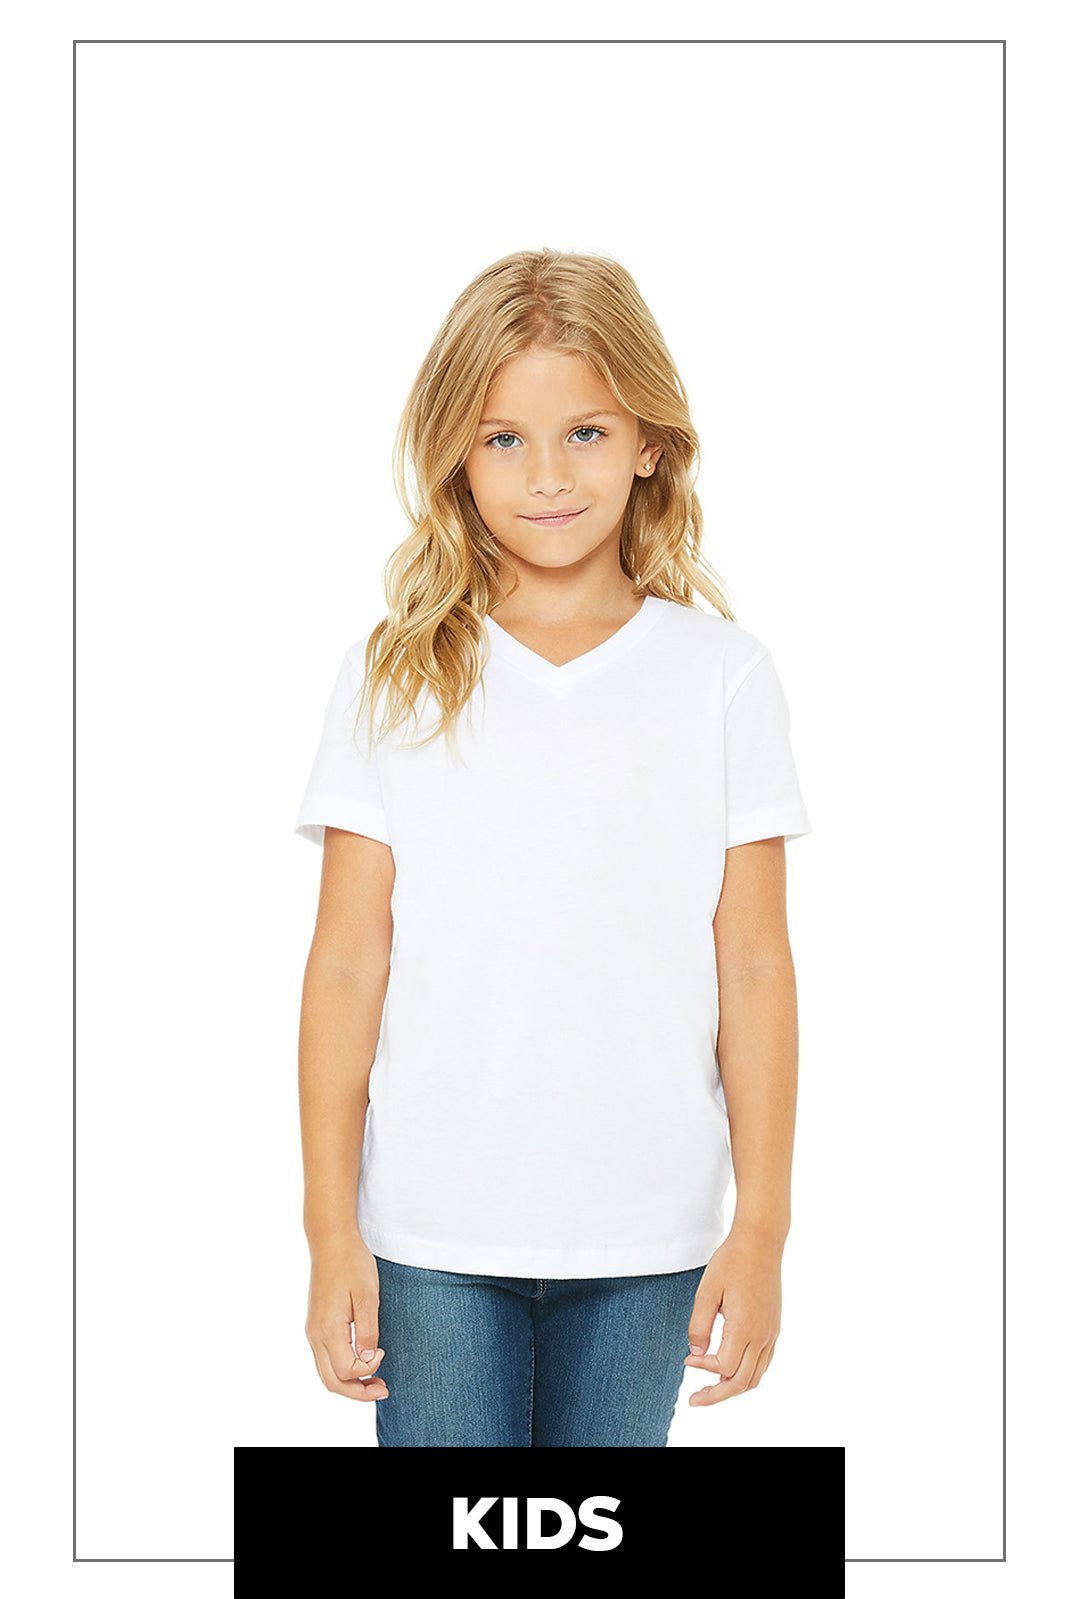 https://www.smartprintsink.com/collections/kids-garments